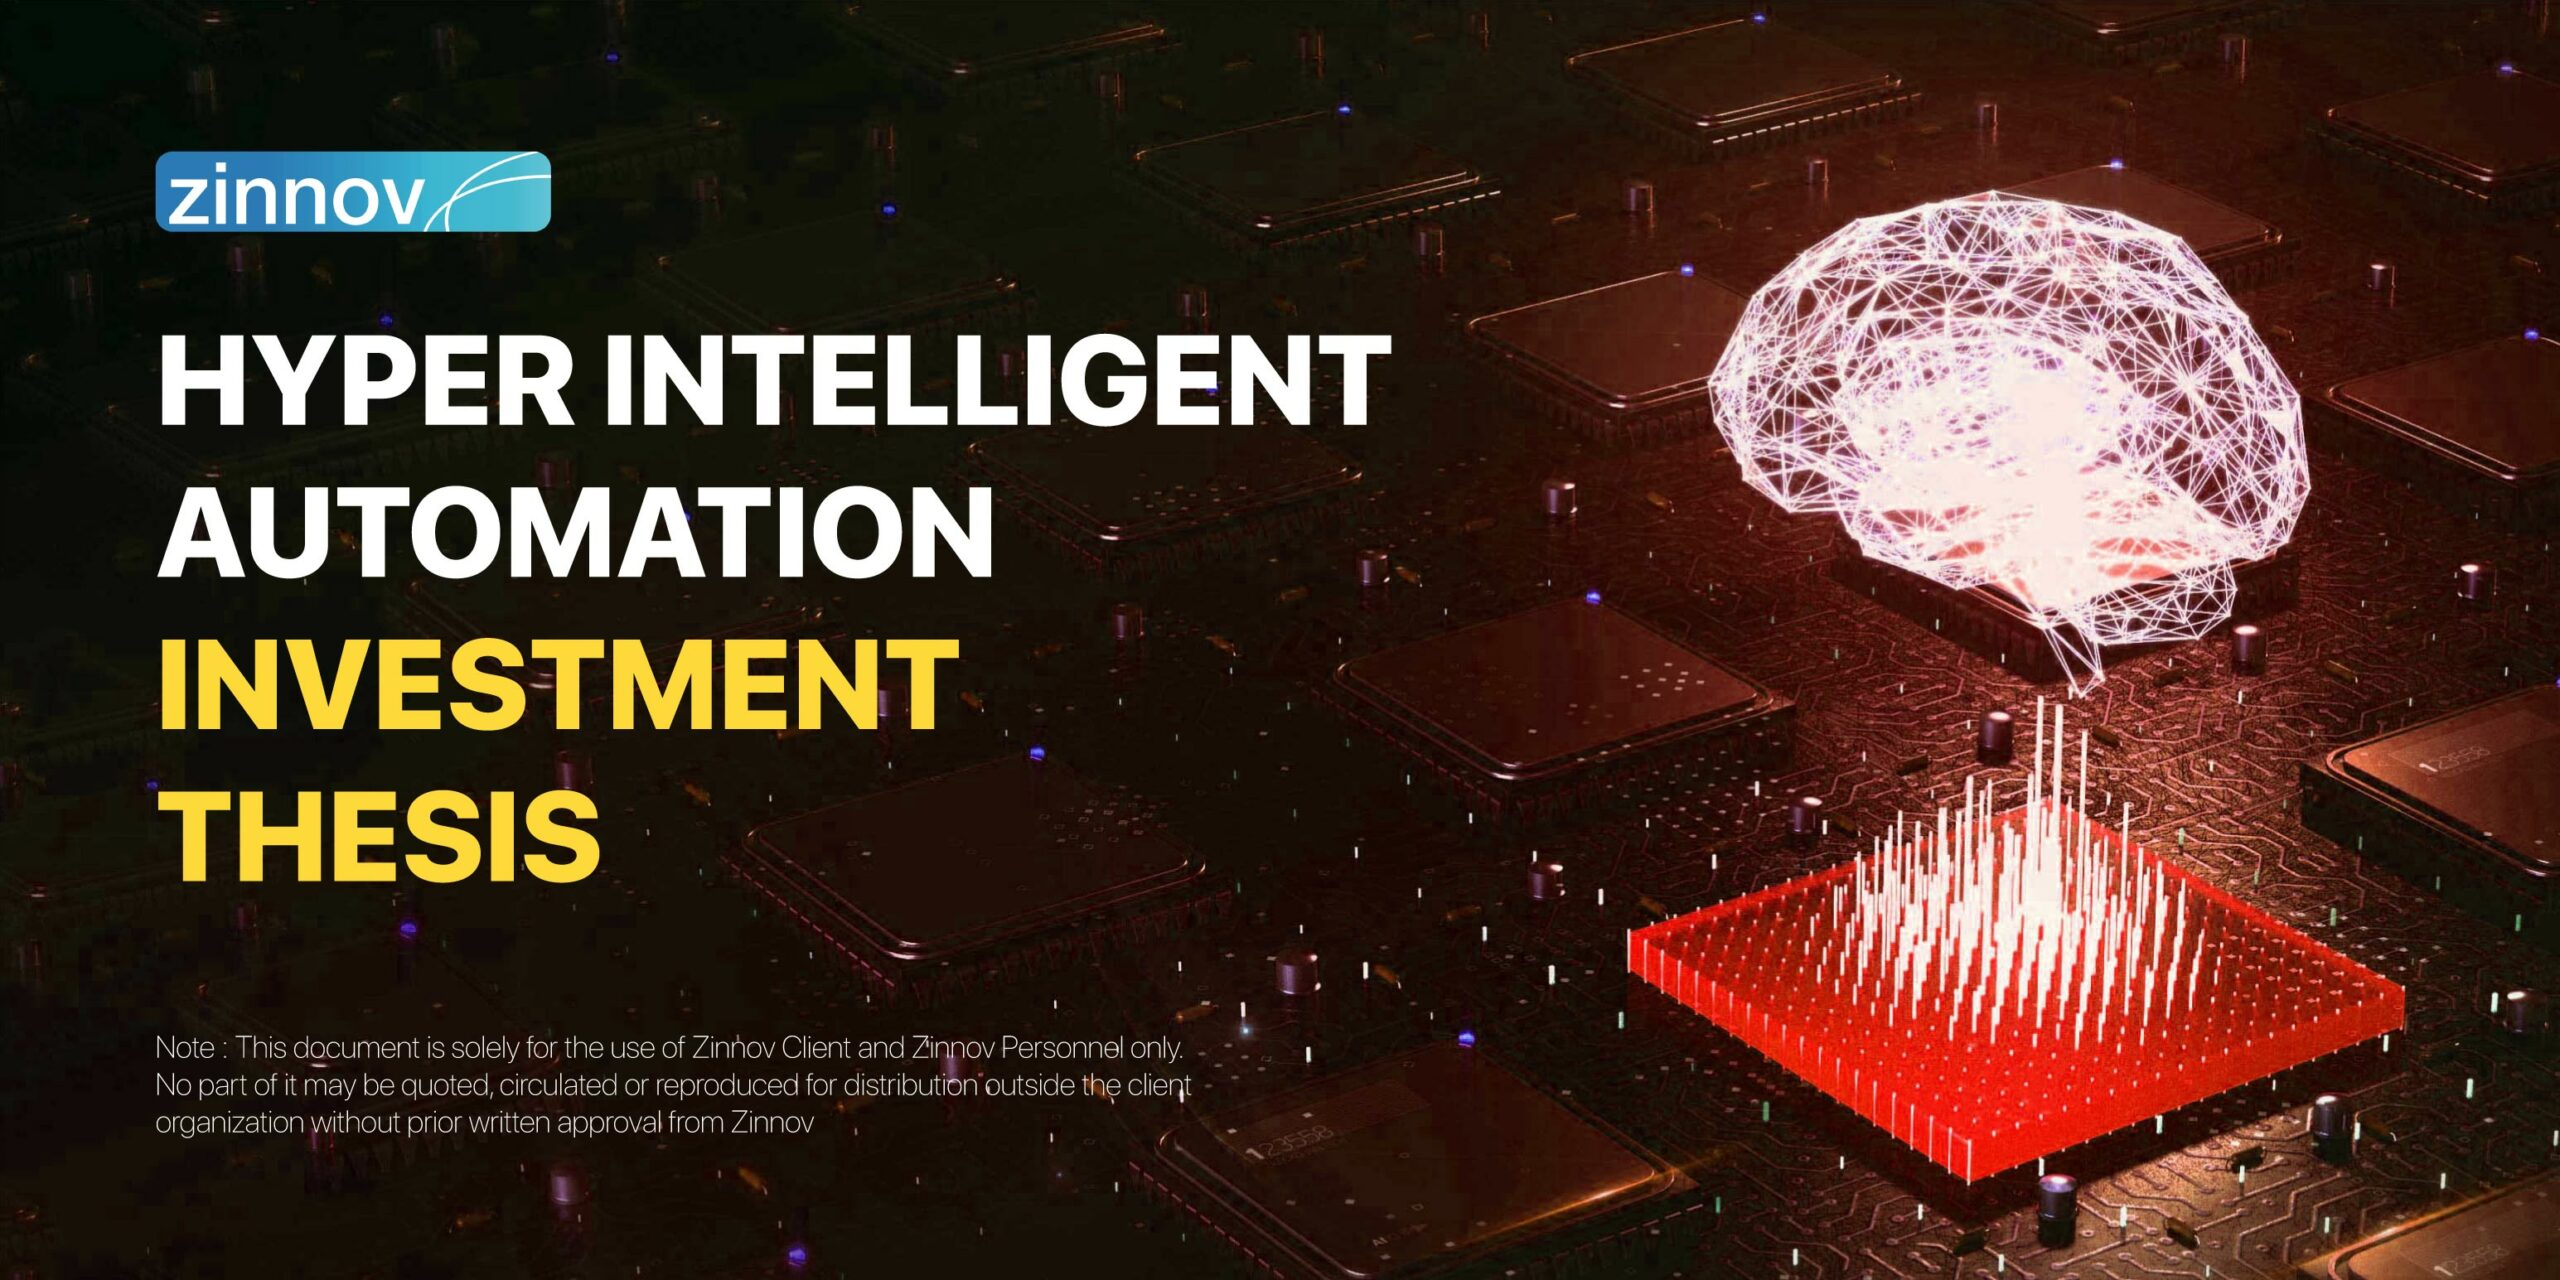 Private Equity investment thesis for Hyper Intelligent Automation